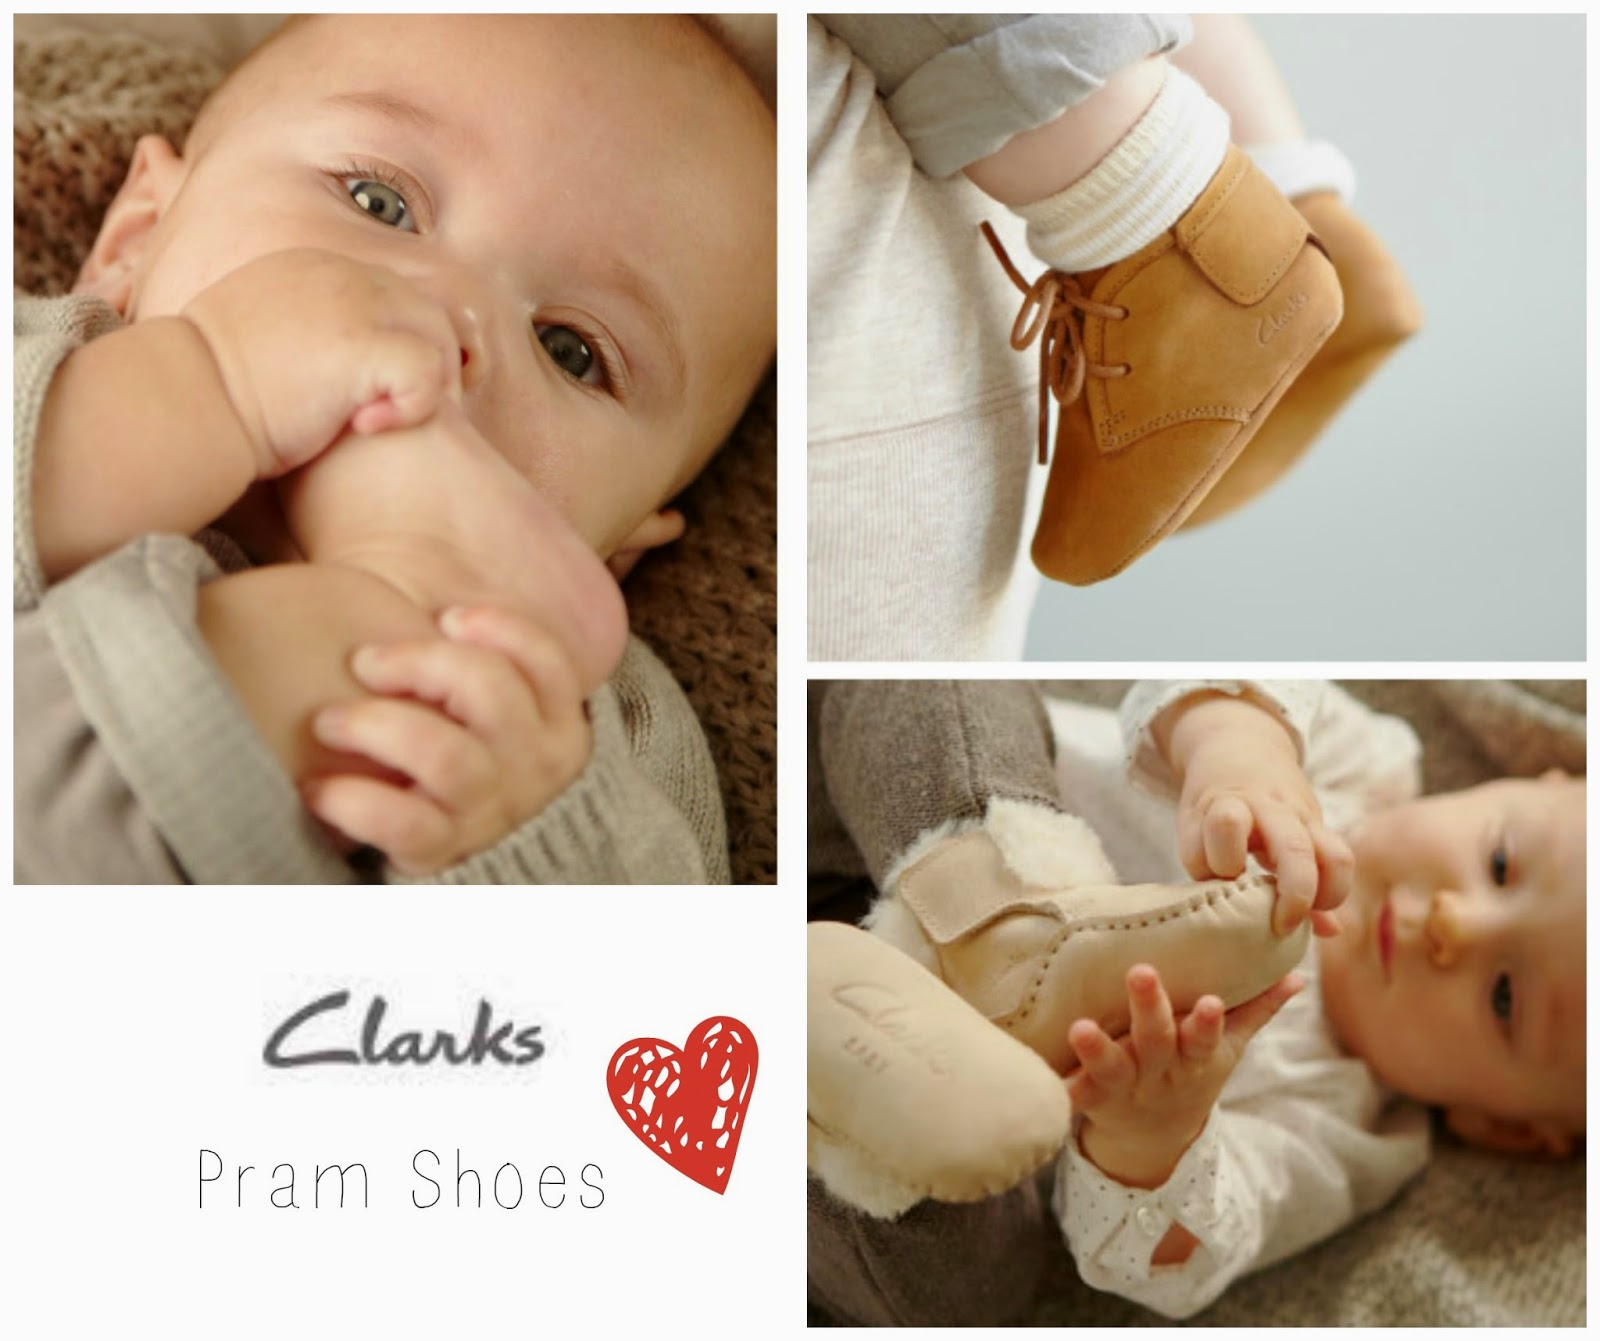 First baby pram shoes from Clarks - and my pick of the rest! | pram shoes | marks & spencer | crib shoes | first shoes | clarks | clarks pram shoes | ned collection | baby first shoes | shoes for babies | alex and alexa | next | vevian | la coquet | clarks first shoes for babies | clarks shoes | baby shoes | early days shoes | classic baby shoes \ mayoral | leather brogues for babies | crib she's for little feet } kids shoes | babies shoes | mamasVIB | fashion | style | kids fashion | new nor | gift ideas | mamasVIB